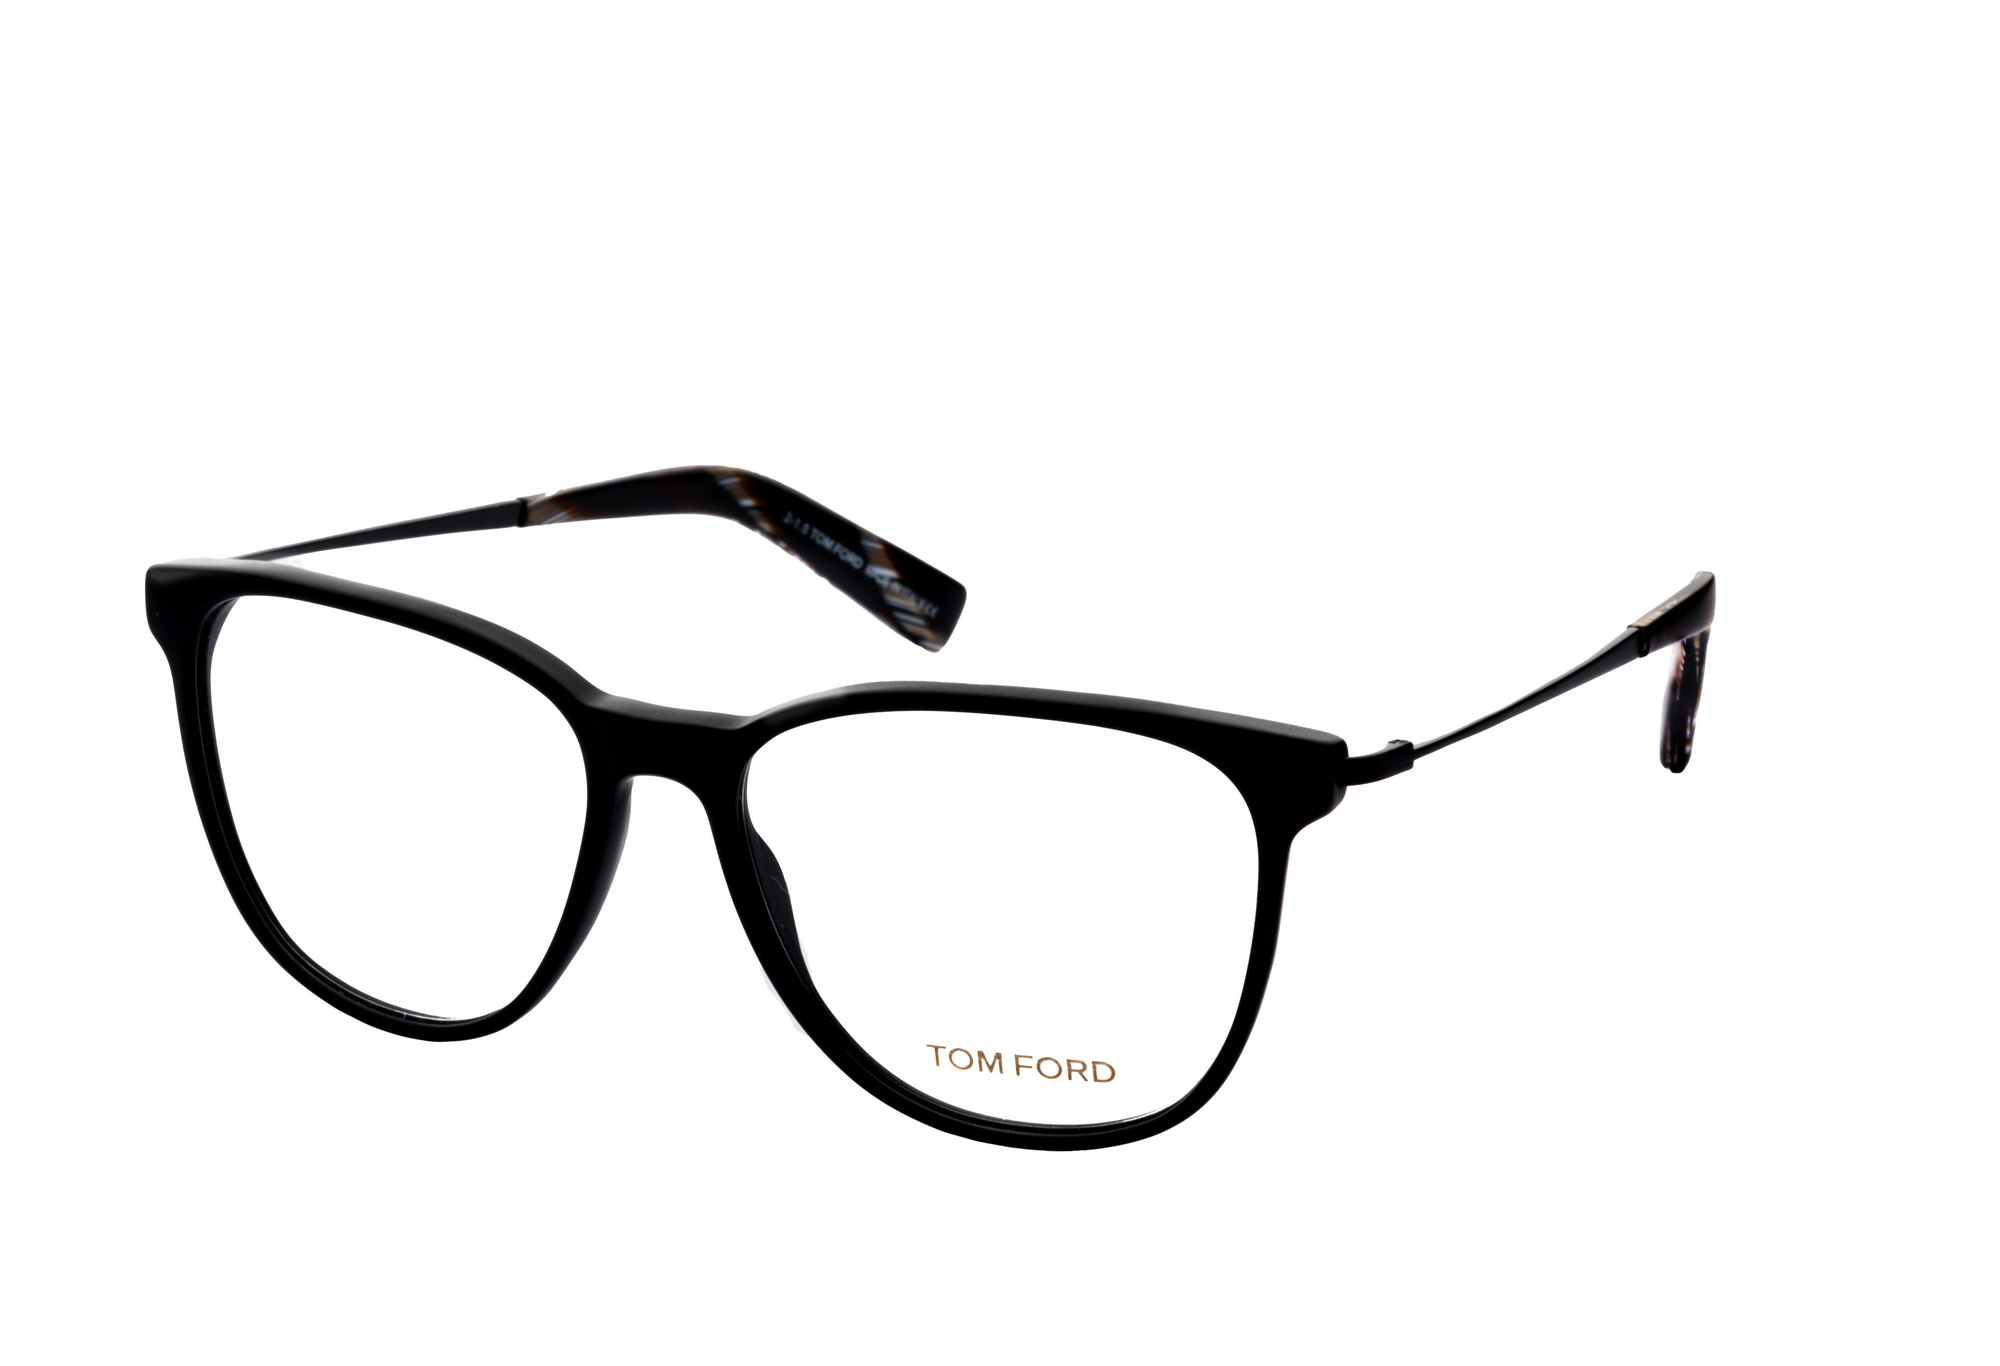 Tom Ford TF3006